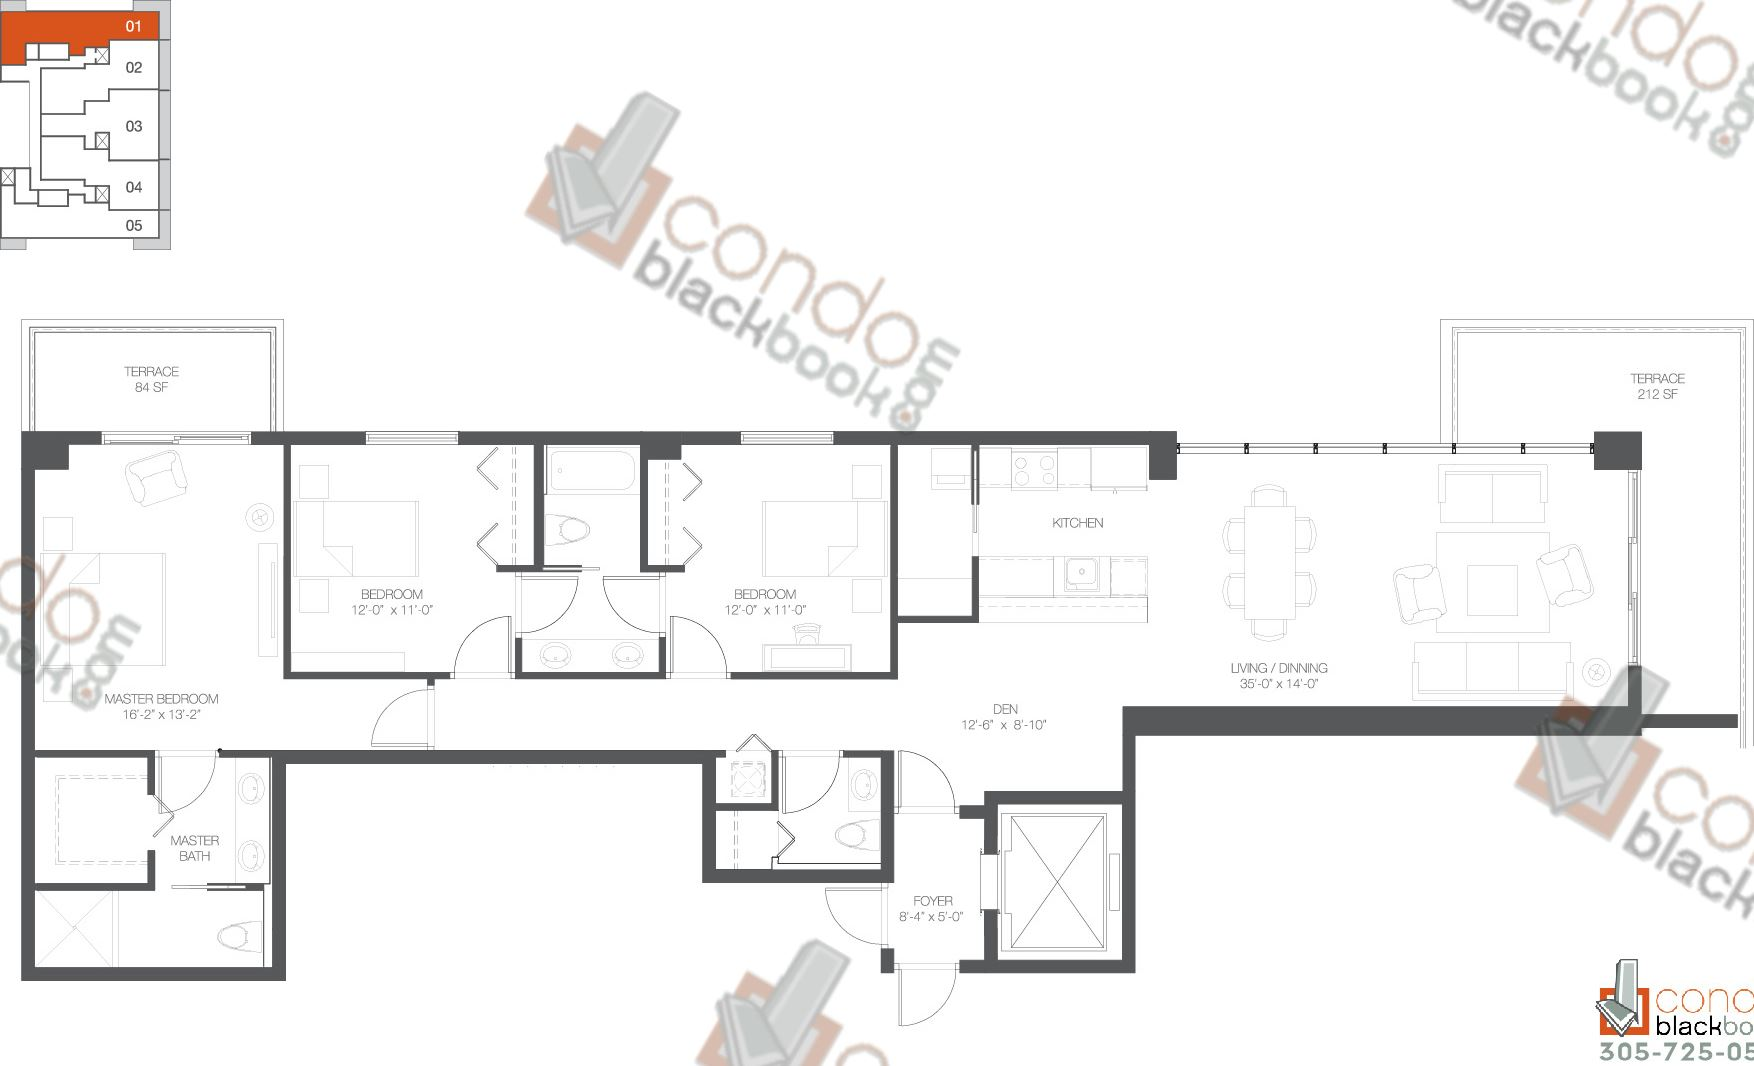 Floor plan for Bay House Edgewater Miami, model Residence 01, line 01, 3+Den/2,5 bedrooms, 2,021 sq ft